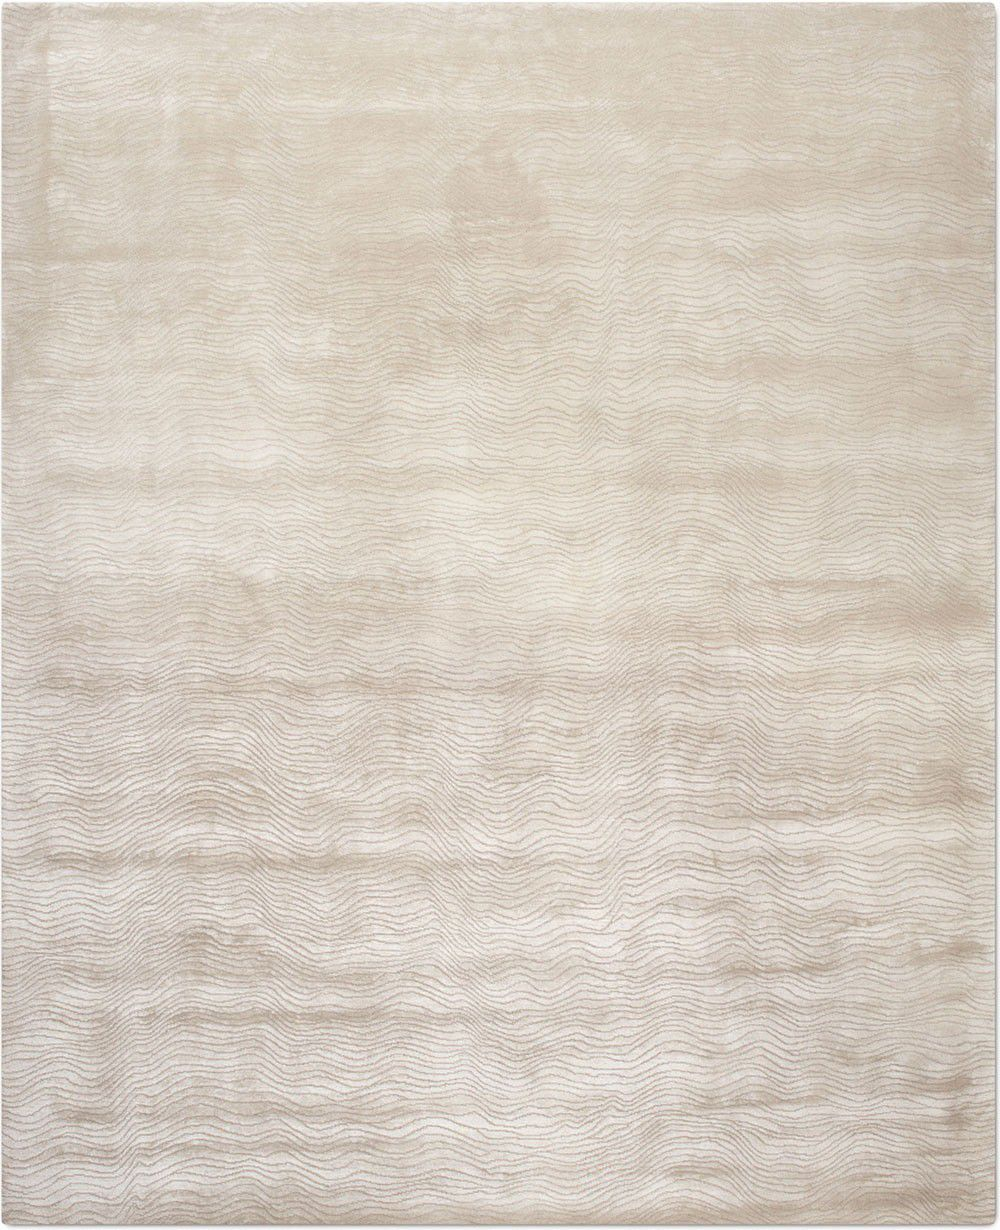 Contemporary Rug Pure Simple